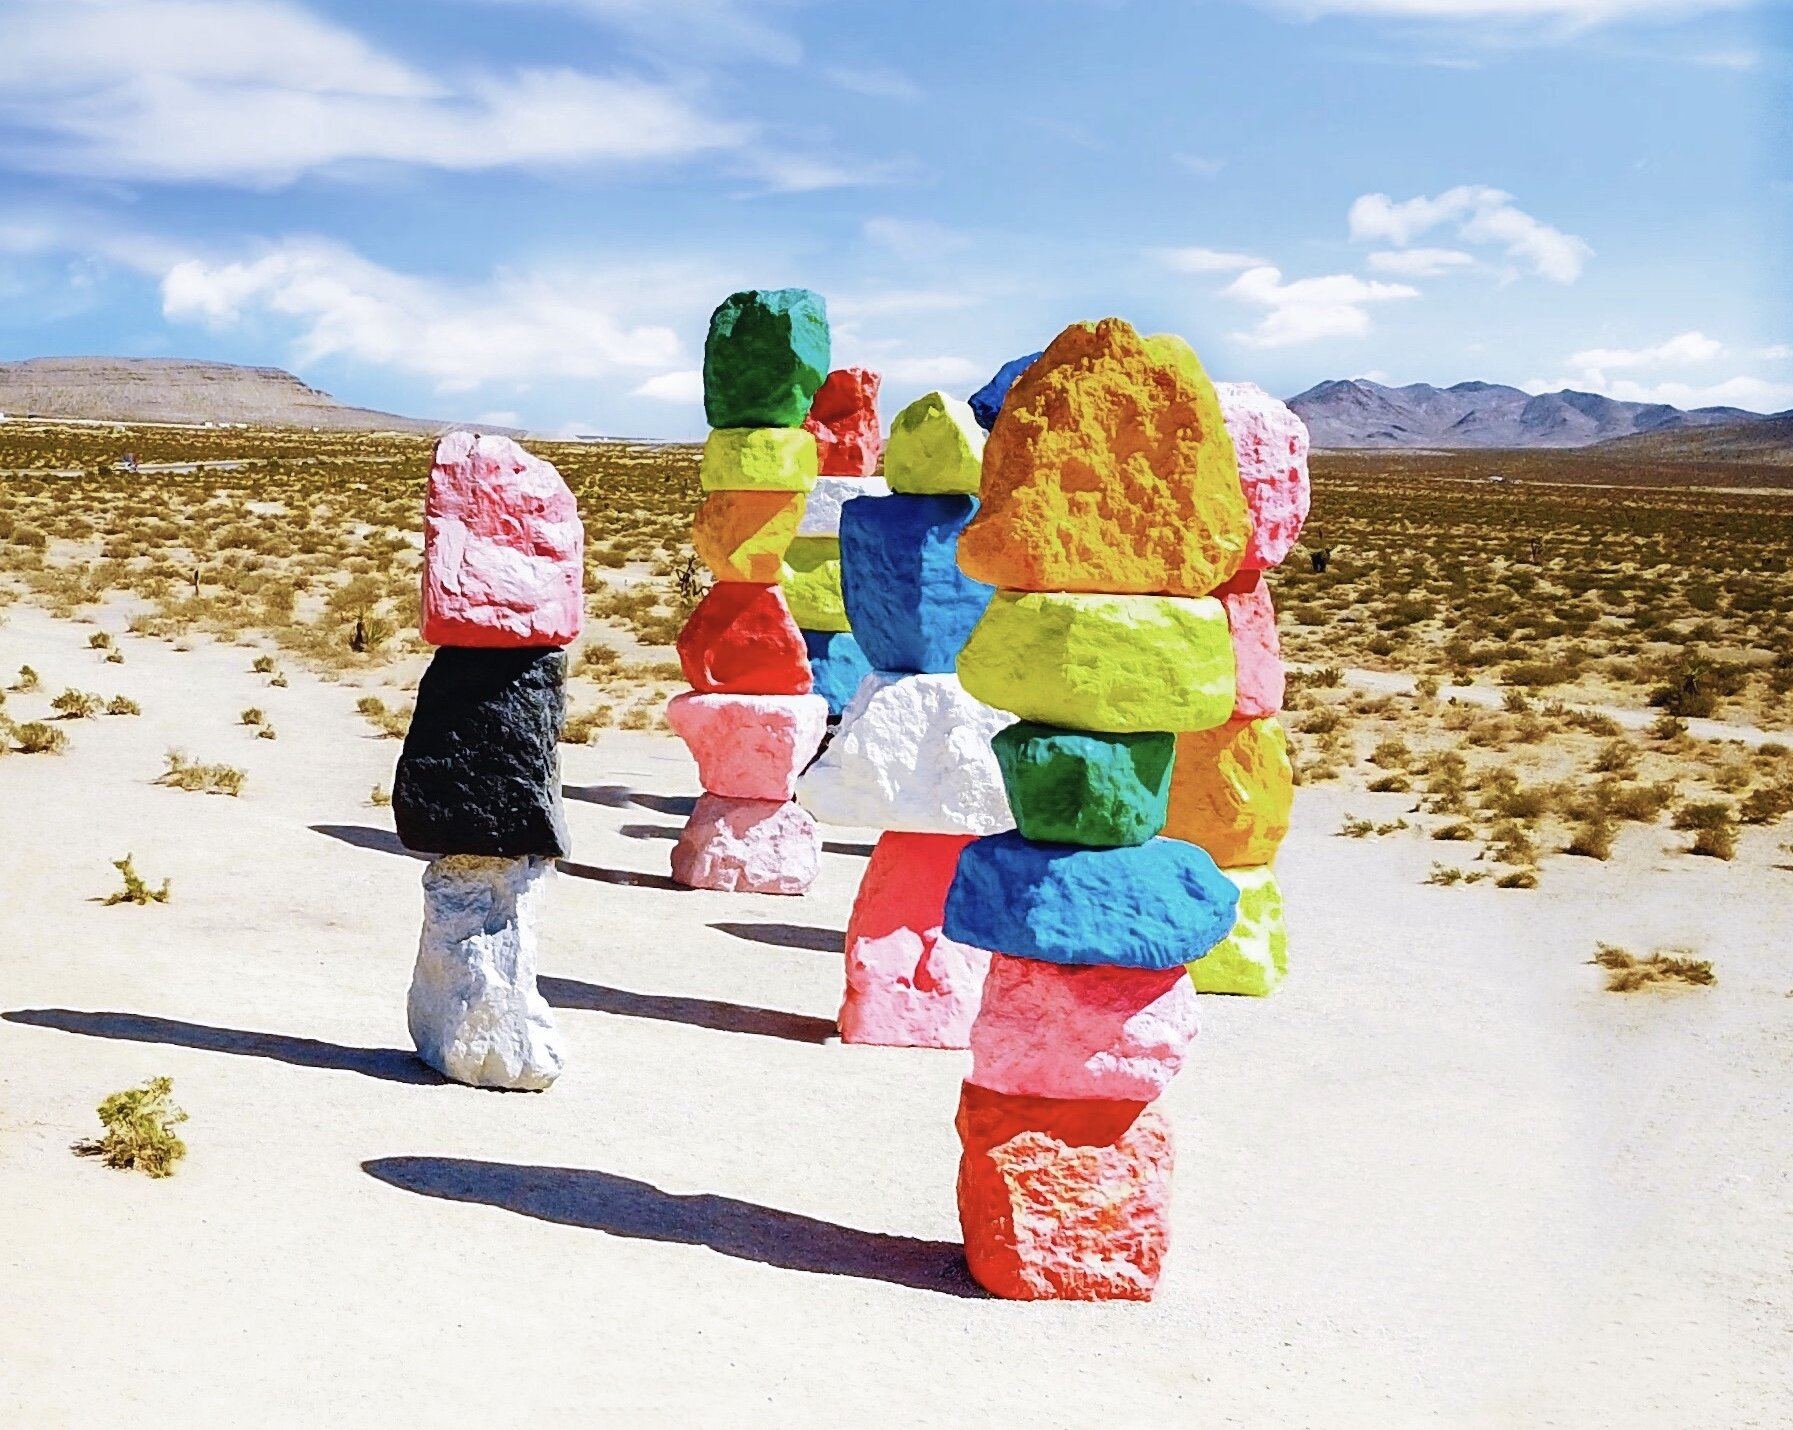 Perhaps the quickest day trip from Las Vegas is an outing to Seven Magic Mountains